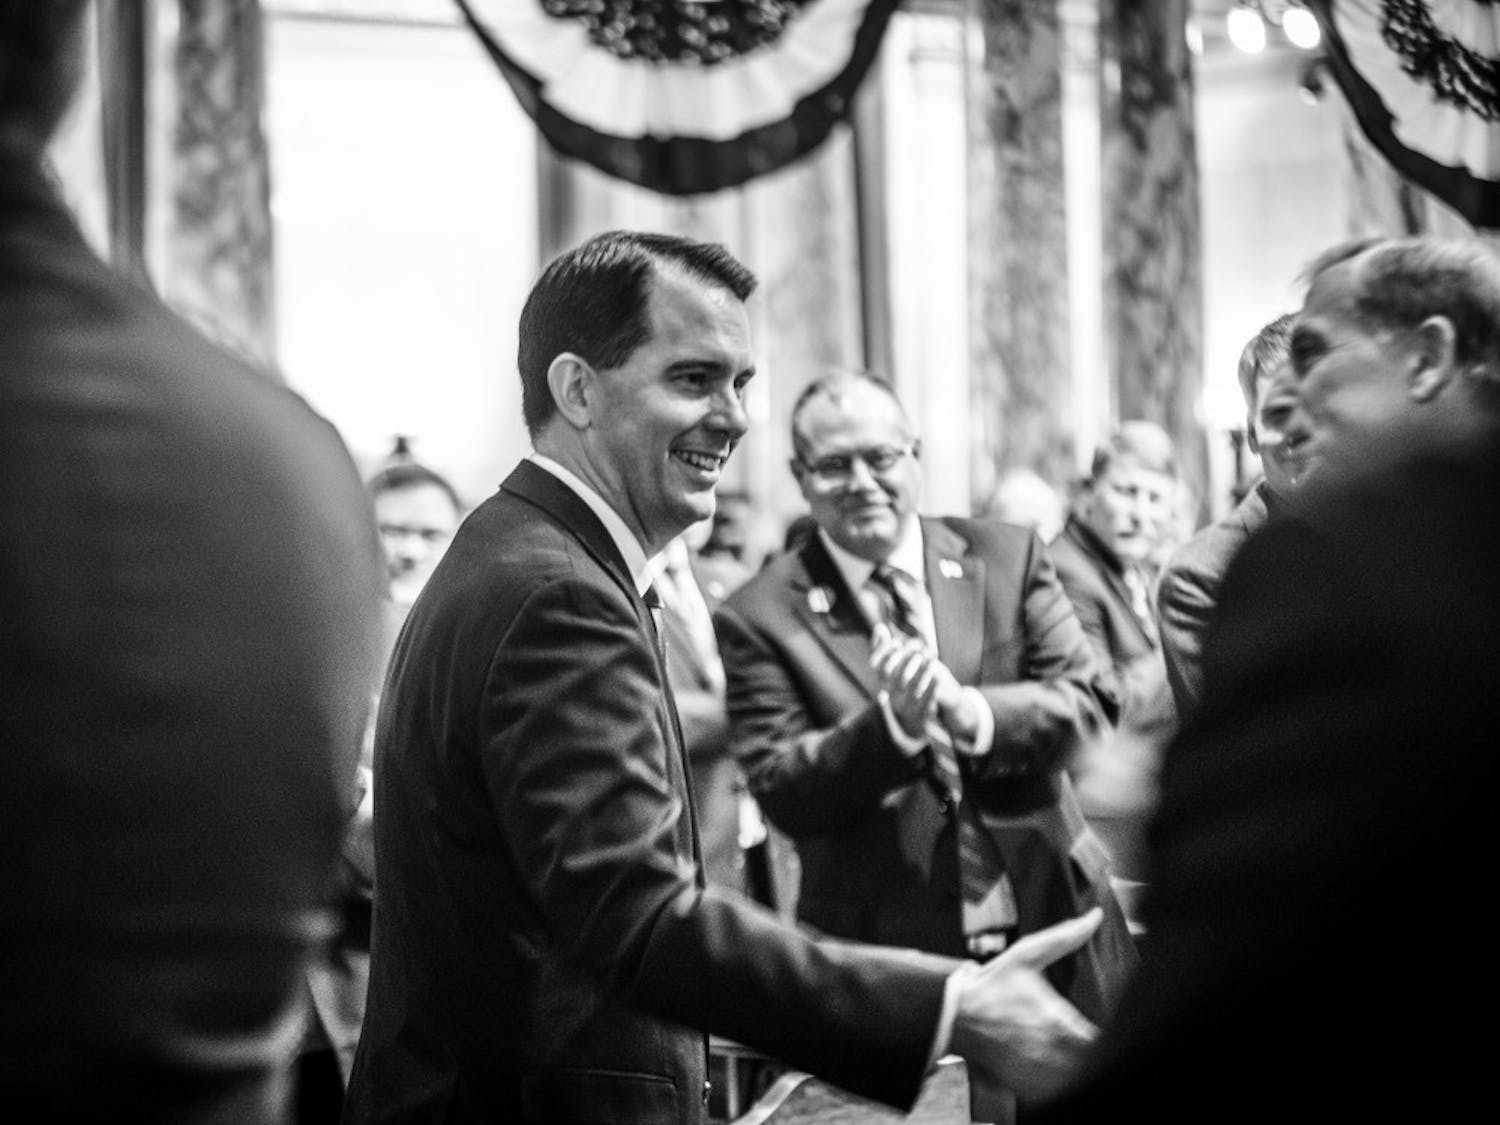 Gov. Scott Walker unveiled the package ofcollege affordability billsin his State of the State address earlier in the month.